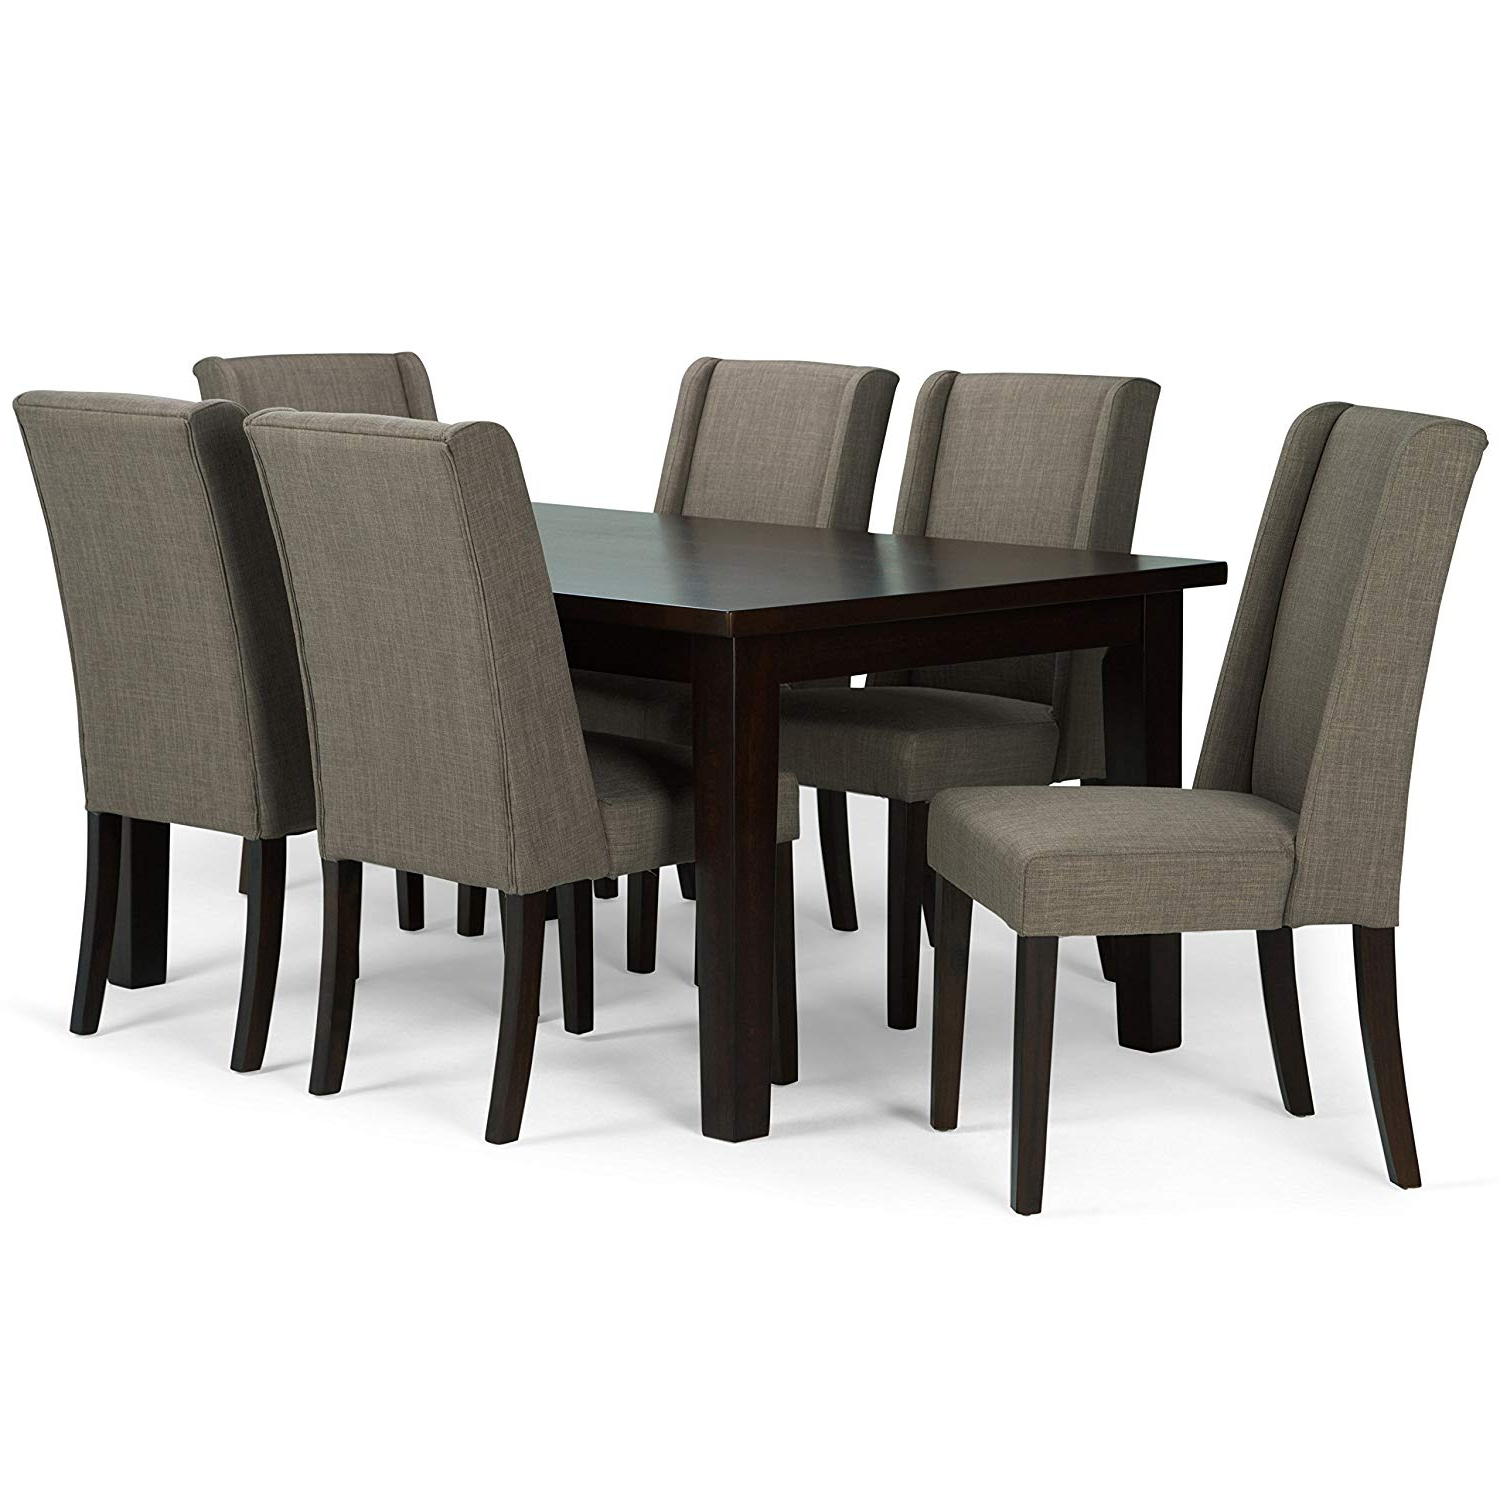 Most Recently Released Simpli Home Axcds7Sb Lml Sotherby Contemporary 7 Piece Dining Set With 6 Upholstered Dining Chairs In Light Mocha Linen Look Fabric And 66 Inch Wide For Contemporary 6 Seating Rectangular Dining Tables (Gallery 1 of 30)